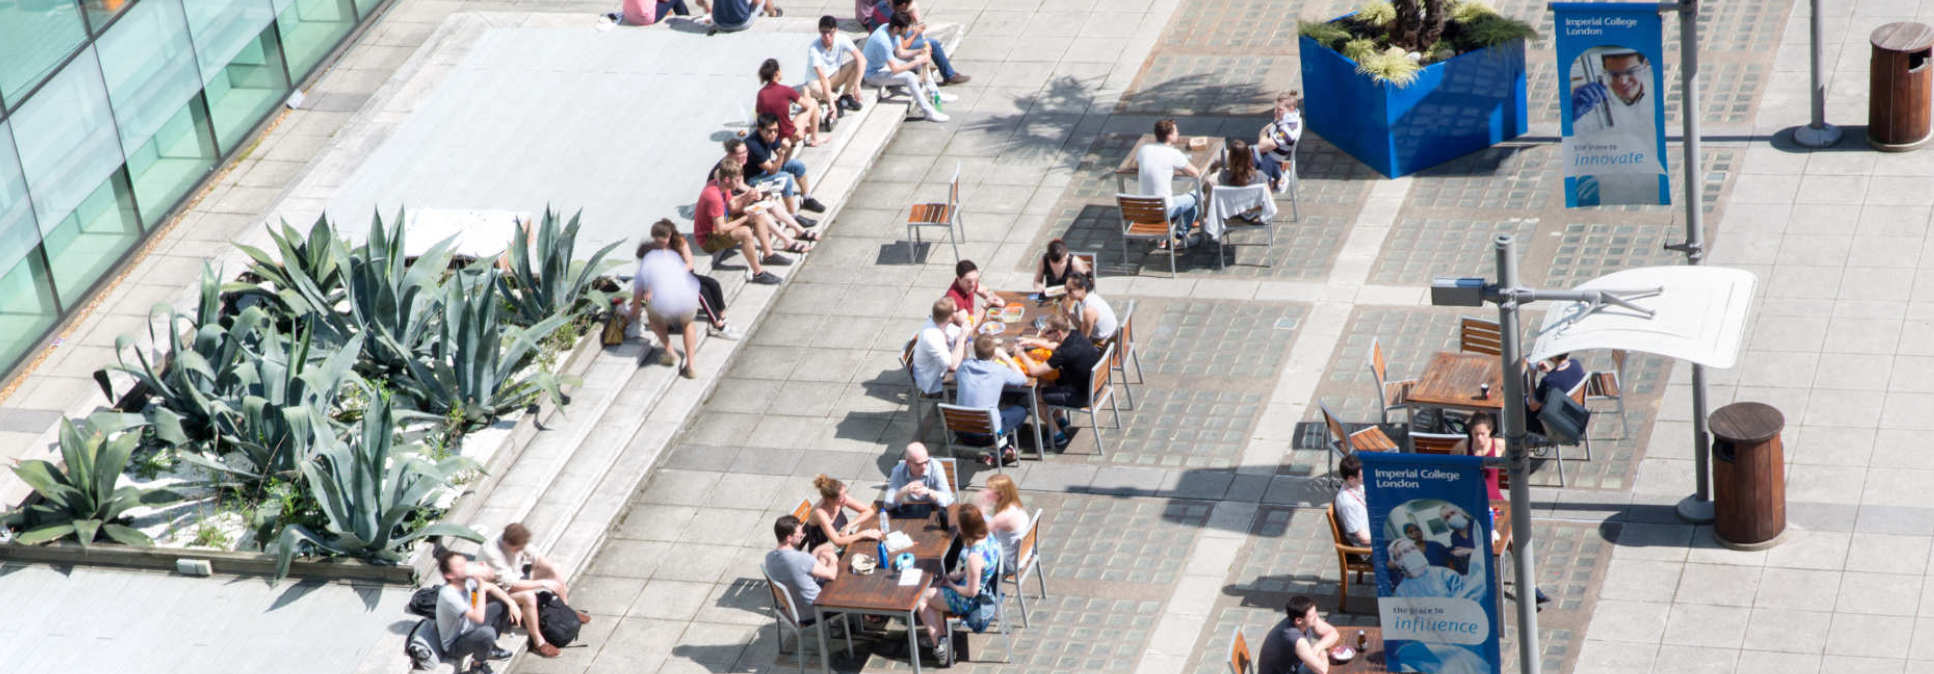 Image of people relaxing on Dalby Court at Imperial College London